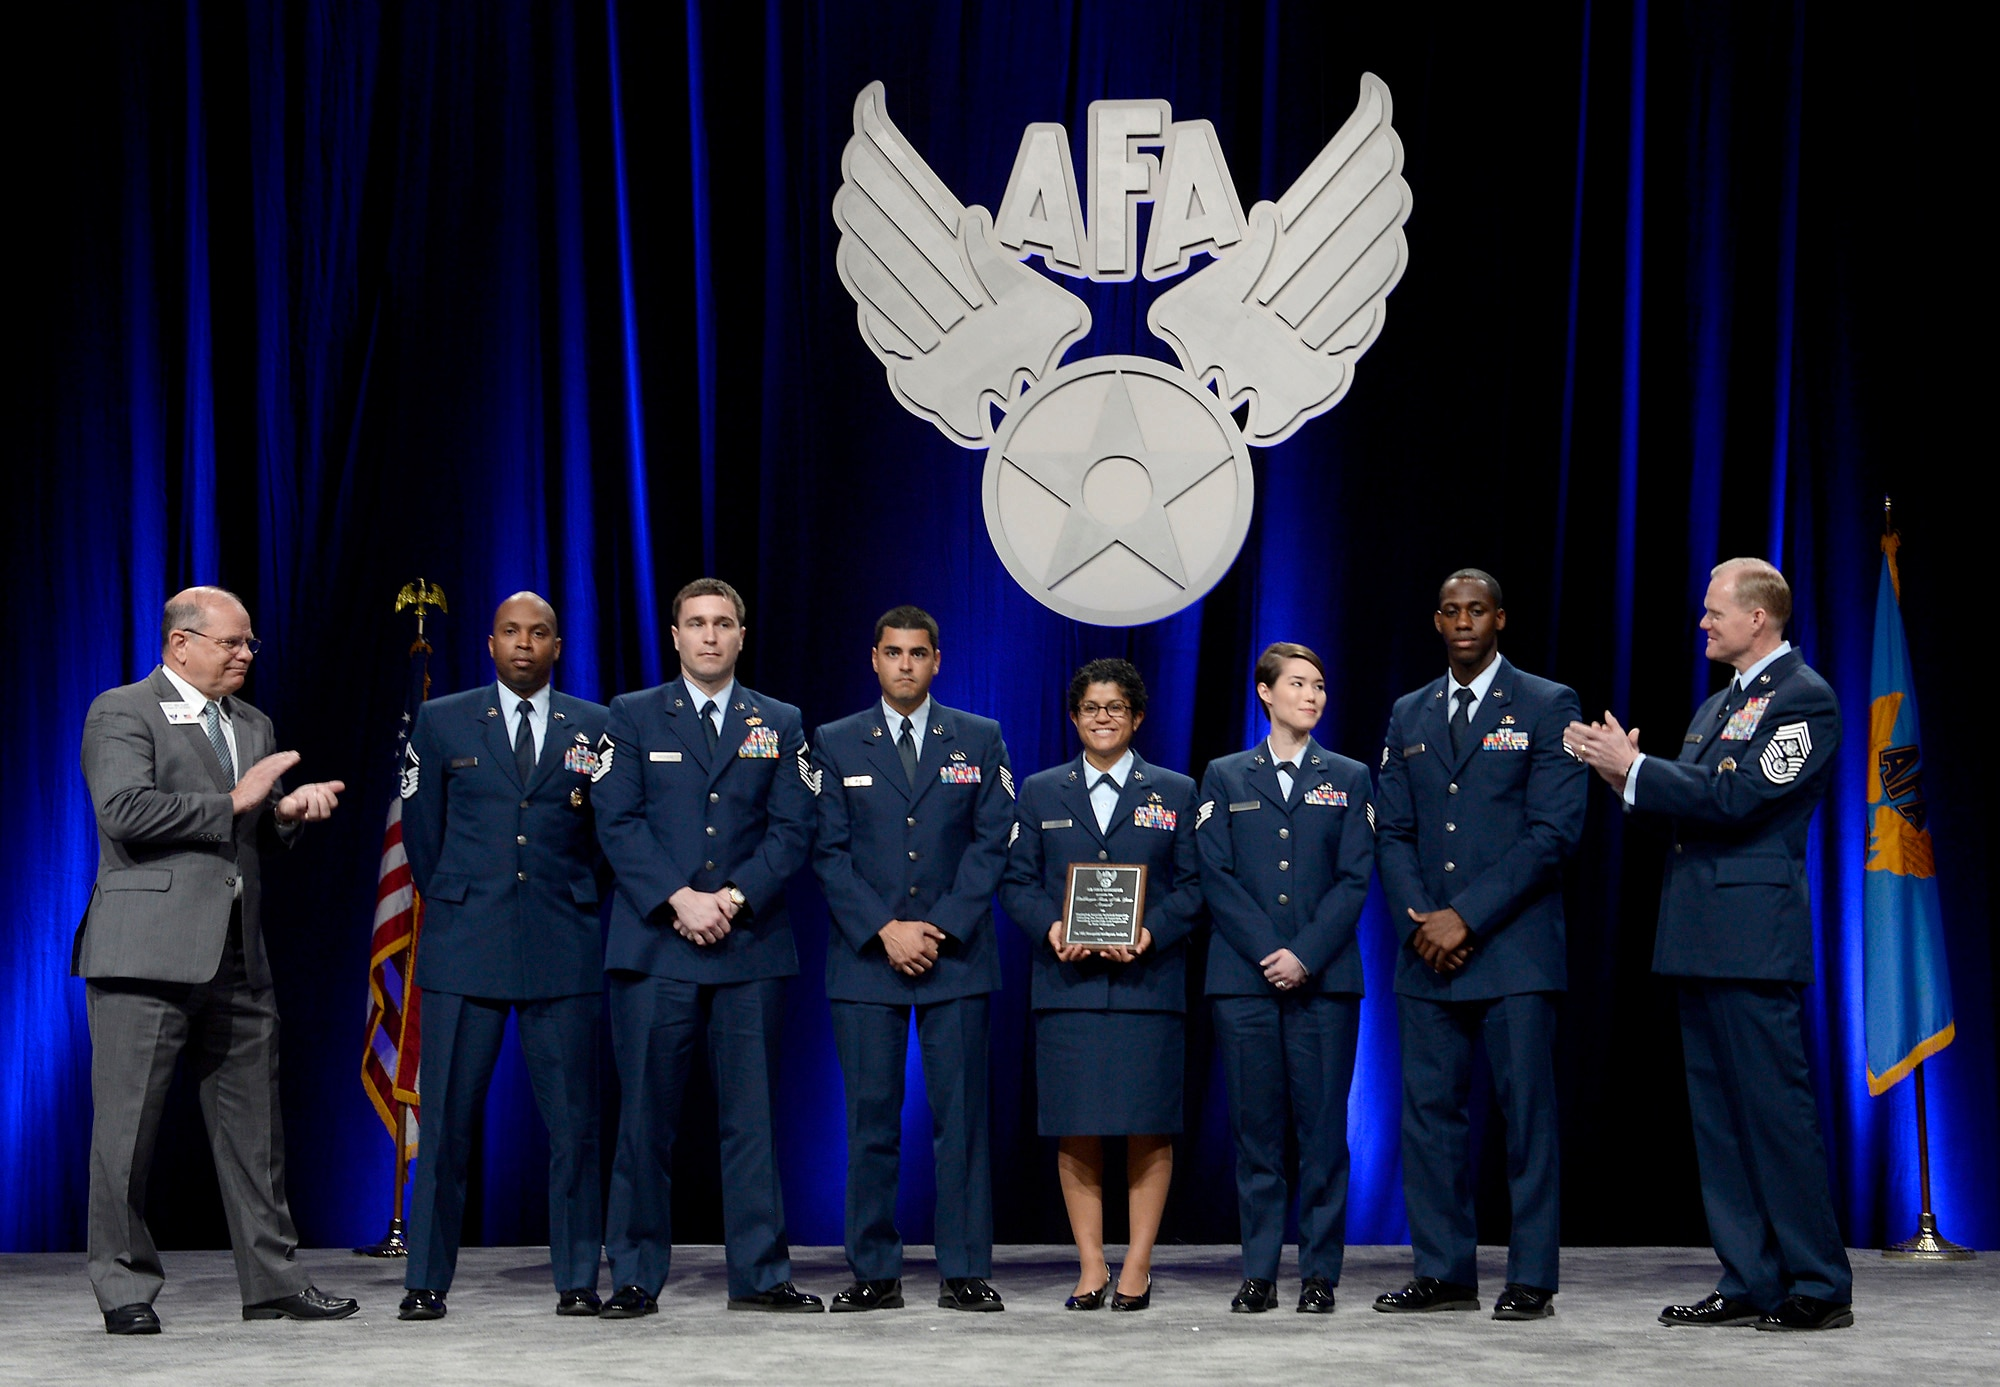 Airmen representing the geospatial intelligence career field are recognized during Chief Master Sgt. of the Air Force James A. Cody's enlisted perspective at the Air Force Association's Air Warfare Symposium in Orlando, Fla., Feb. 25, 2016.  (U.S. Air Force photo/Scott M. Ash)